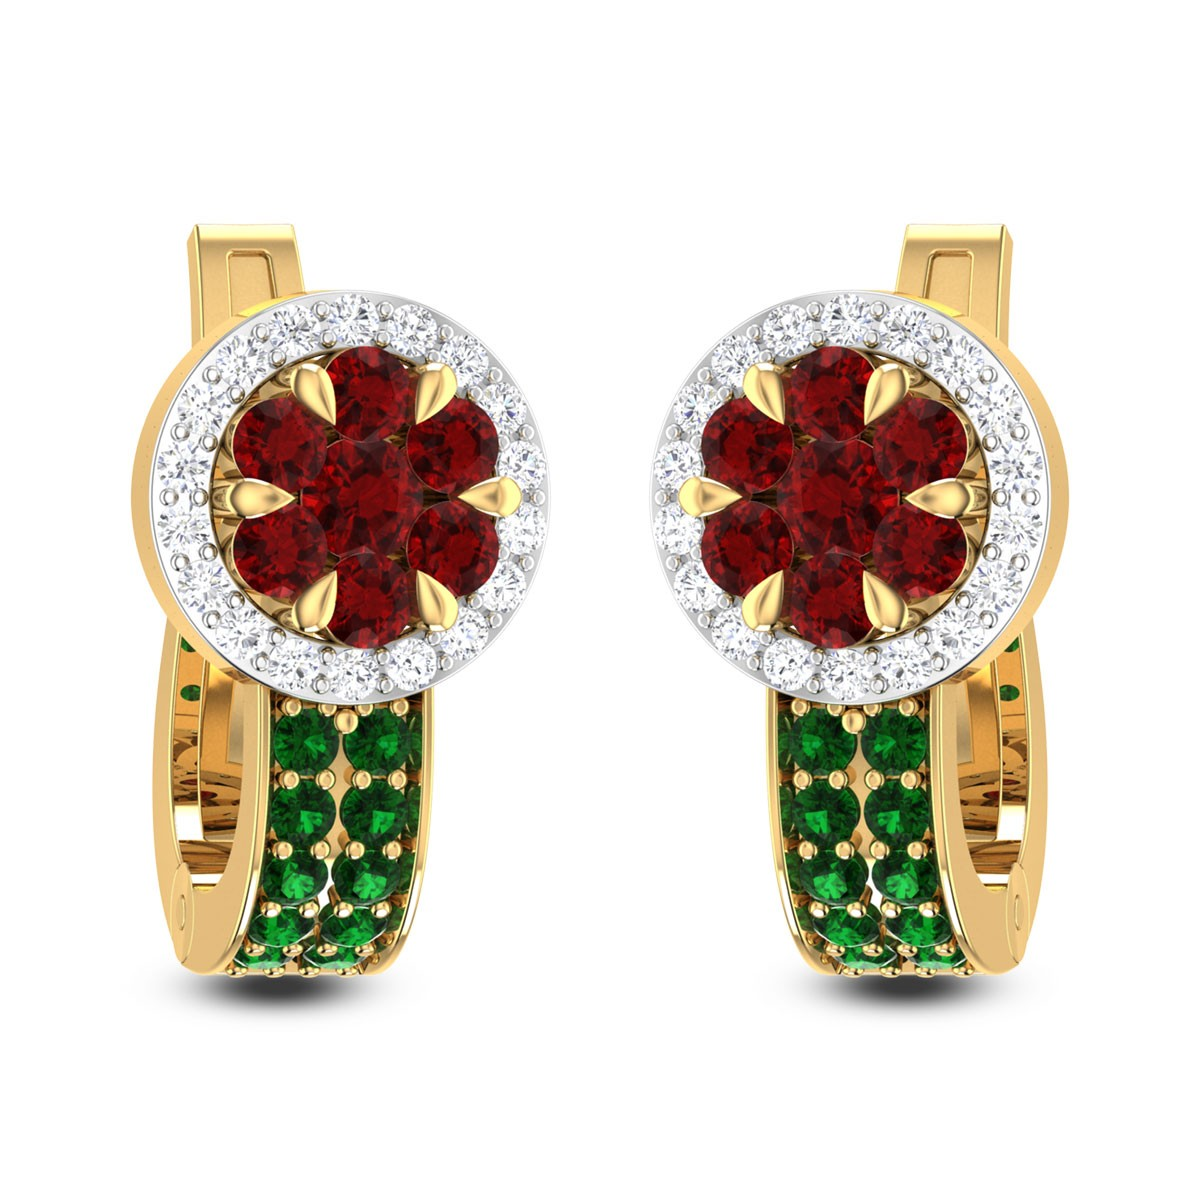 Diffe Types Of Earrings Collection